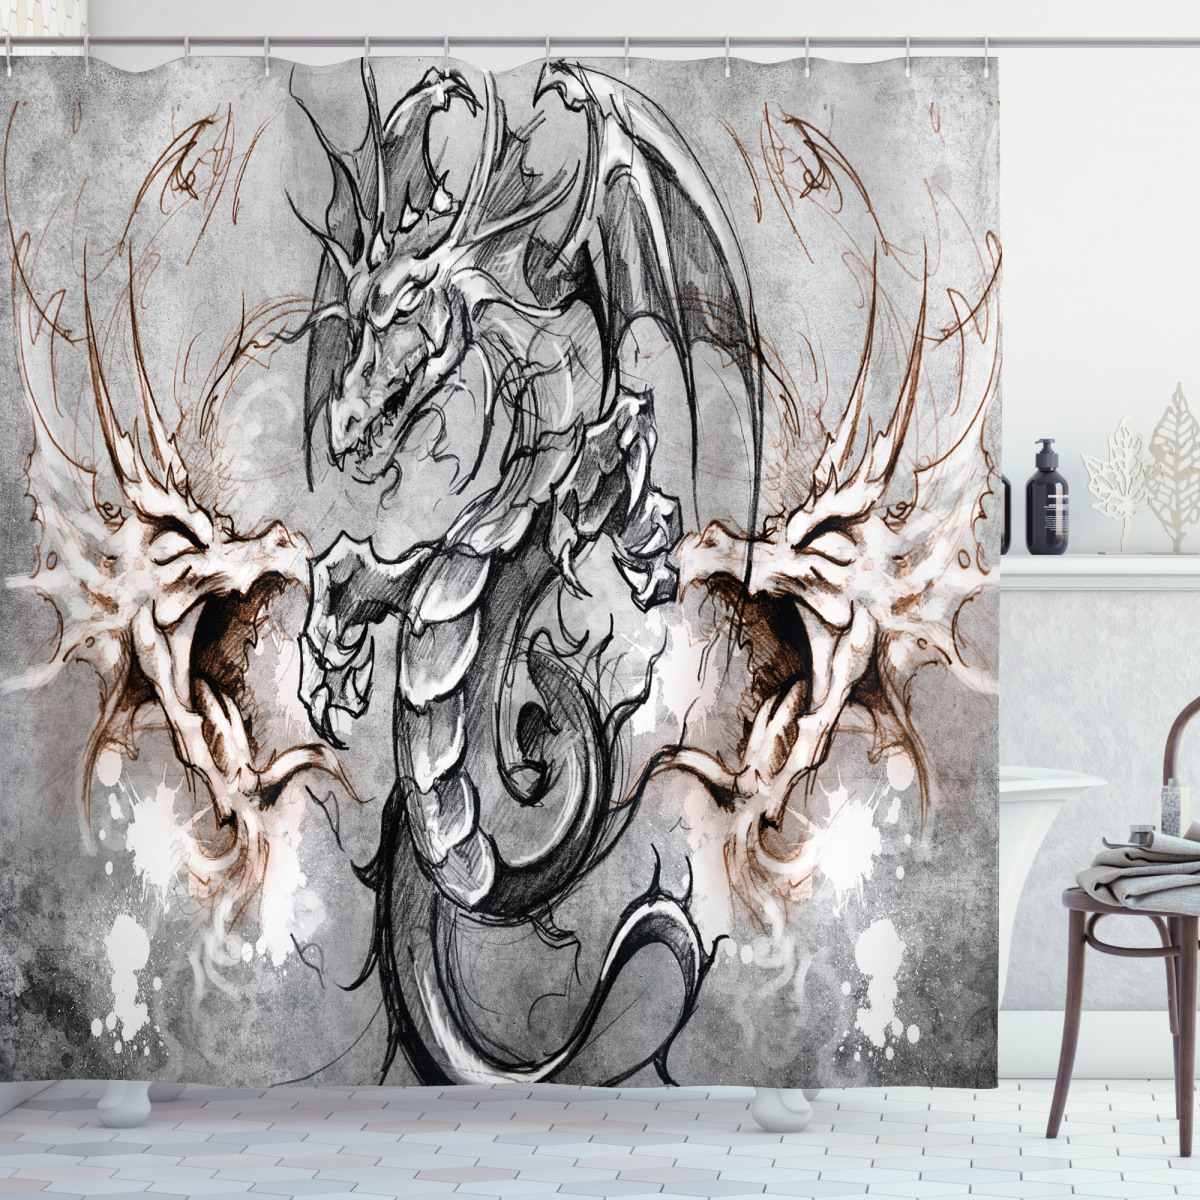 Dragon Shower Curtain Scary Creature Sketch Print for Bathroom